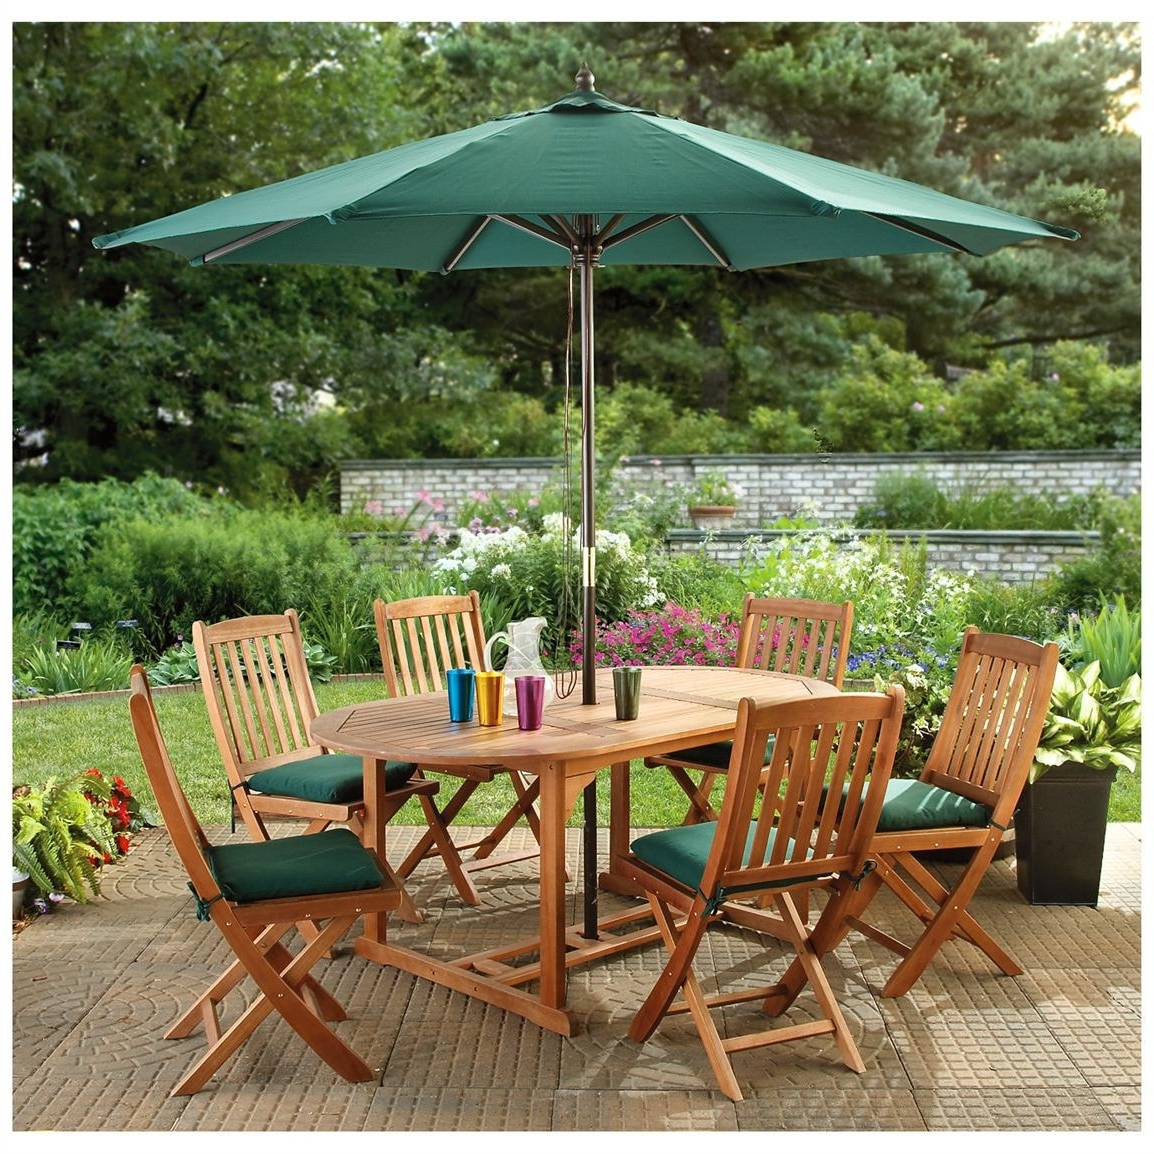 Patio Umbrellas For Tables Pertaining To Fashionable Patio Umbrella Table Attachment — Mistikcamping Home Design : The (View 13 of 20)